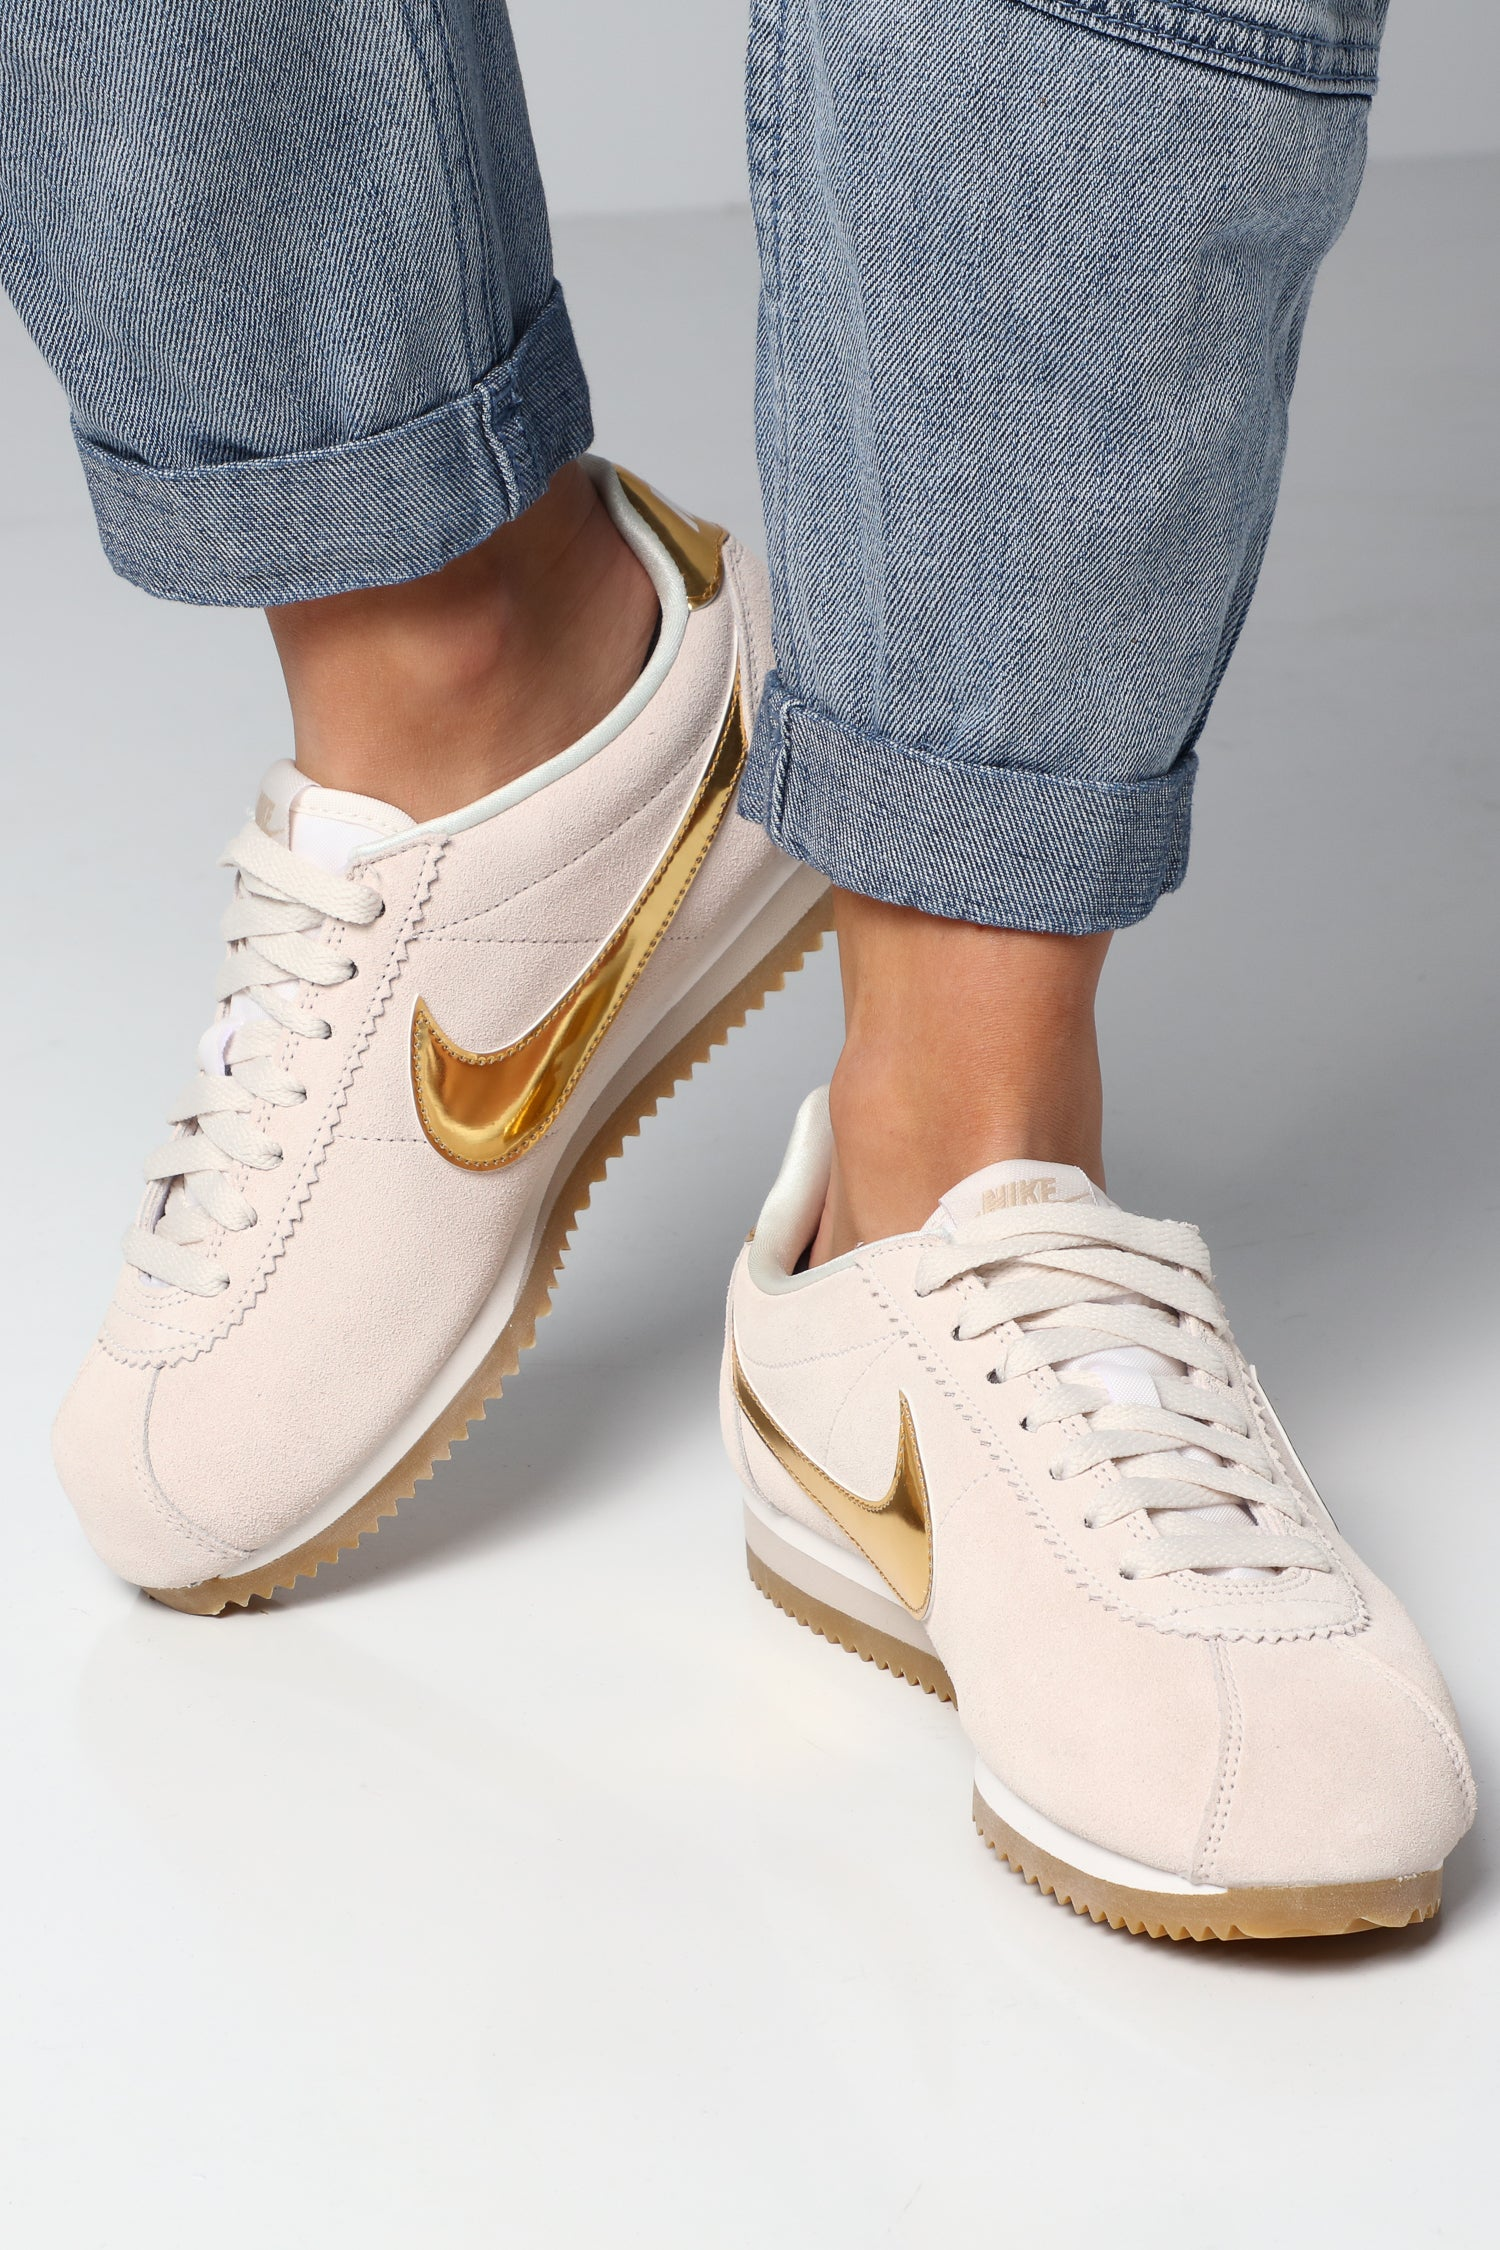 Nike Inflict 3 Limited Edition WhiteMetallic Gold